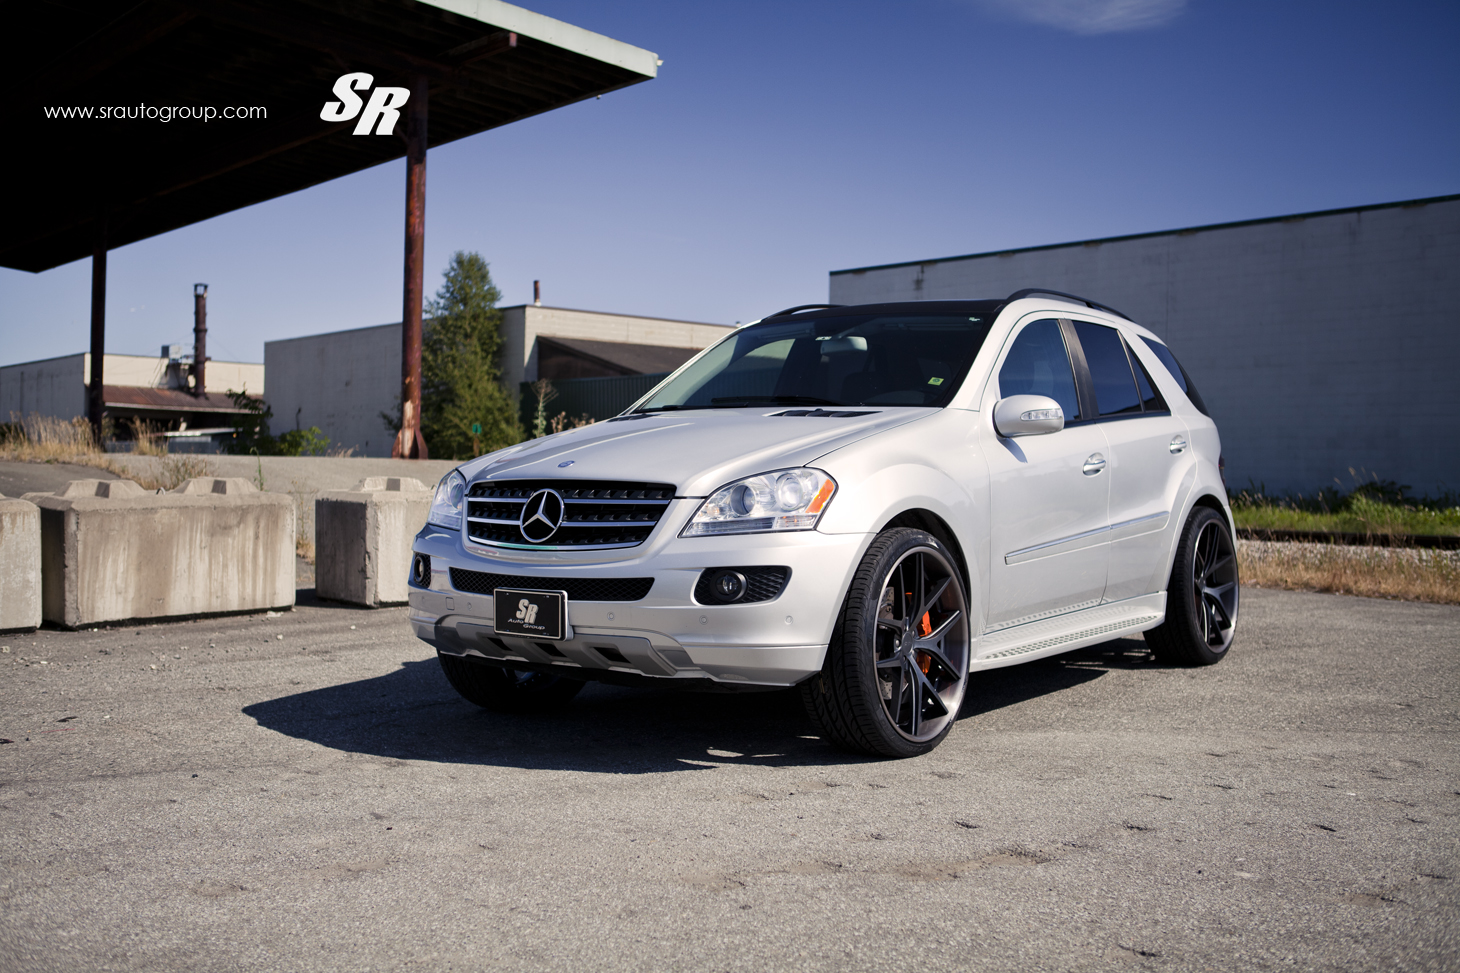 Mercedes-Benz ML 350 W164 Rolling on 24s - autoevolution